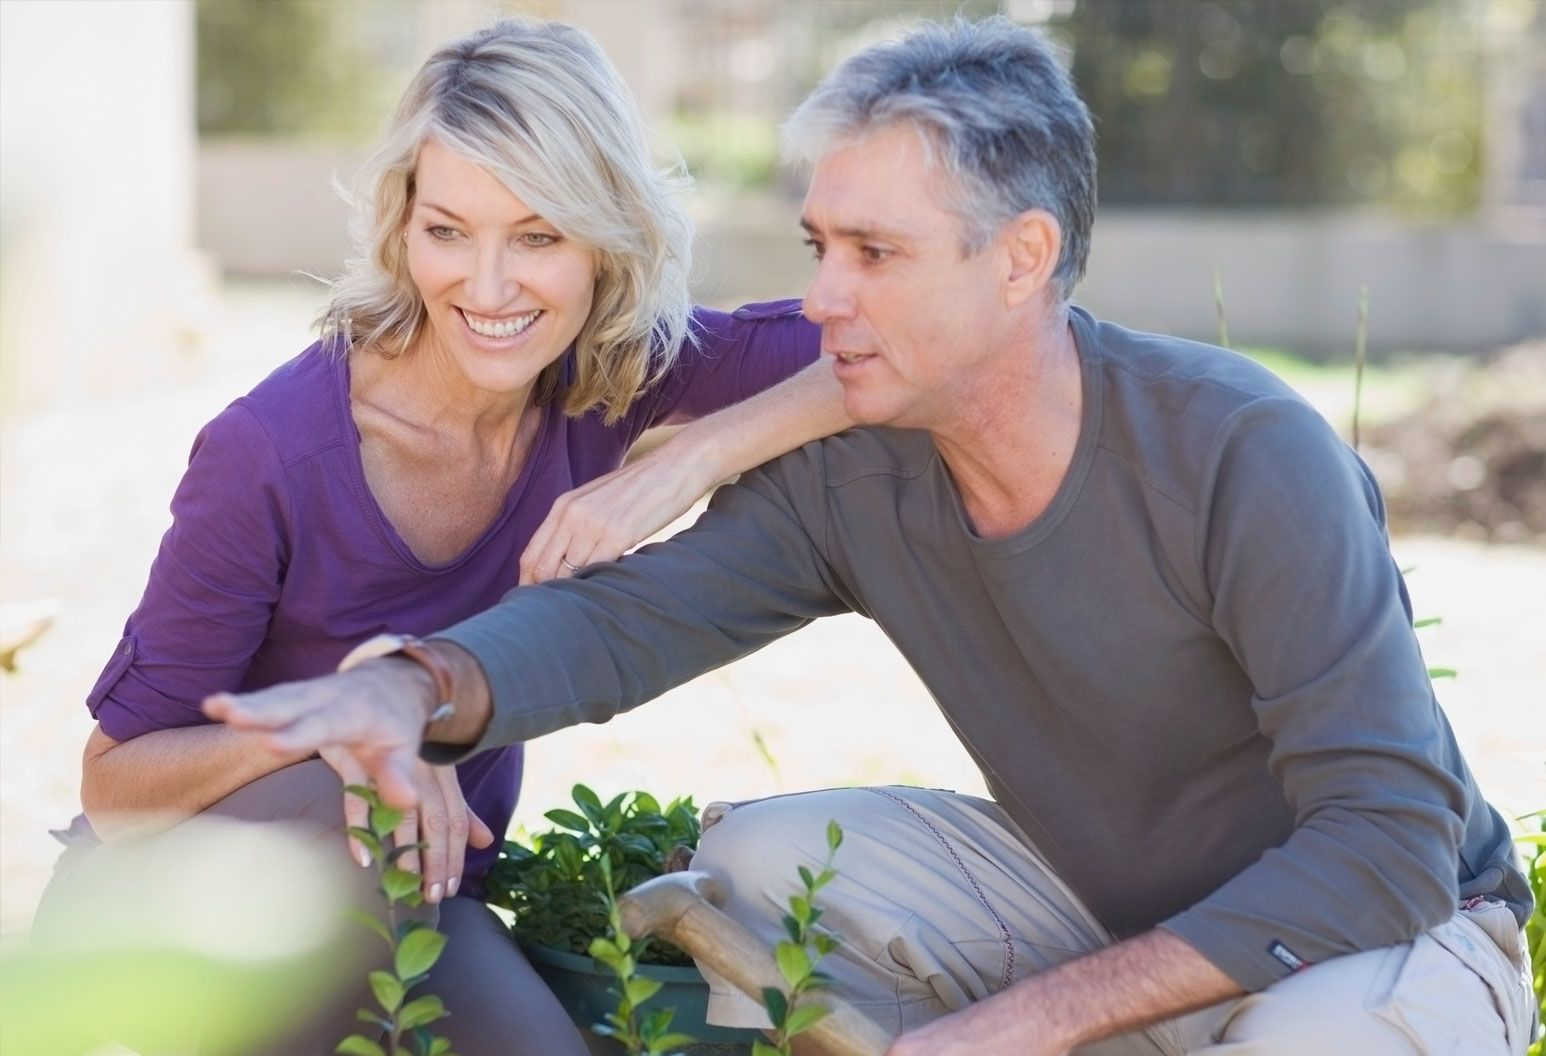 A middle-aged couple crouches down outside on a nice day, examining something out of focus with a smile on their faces.